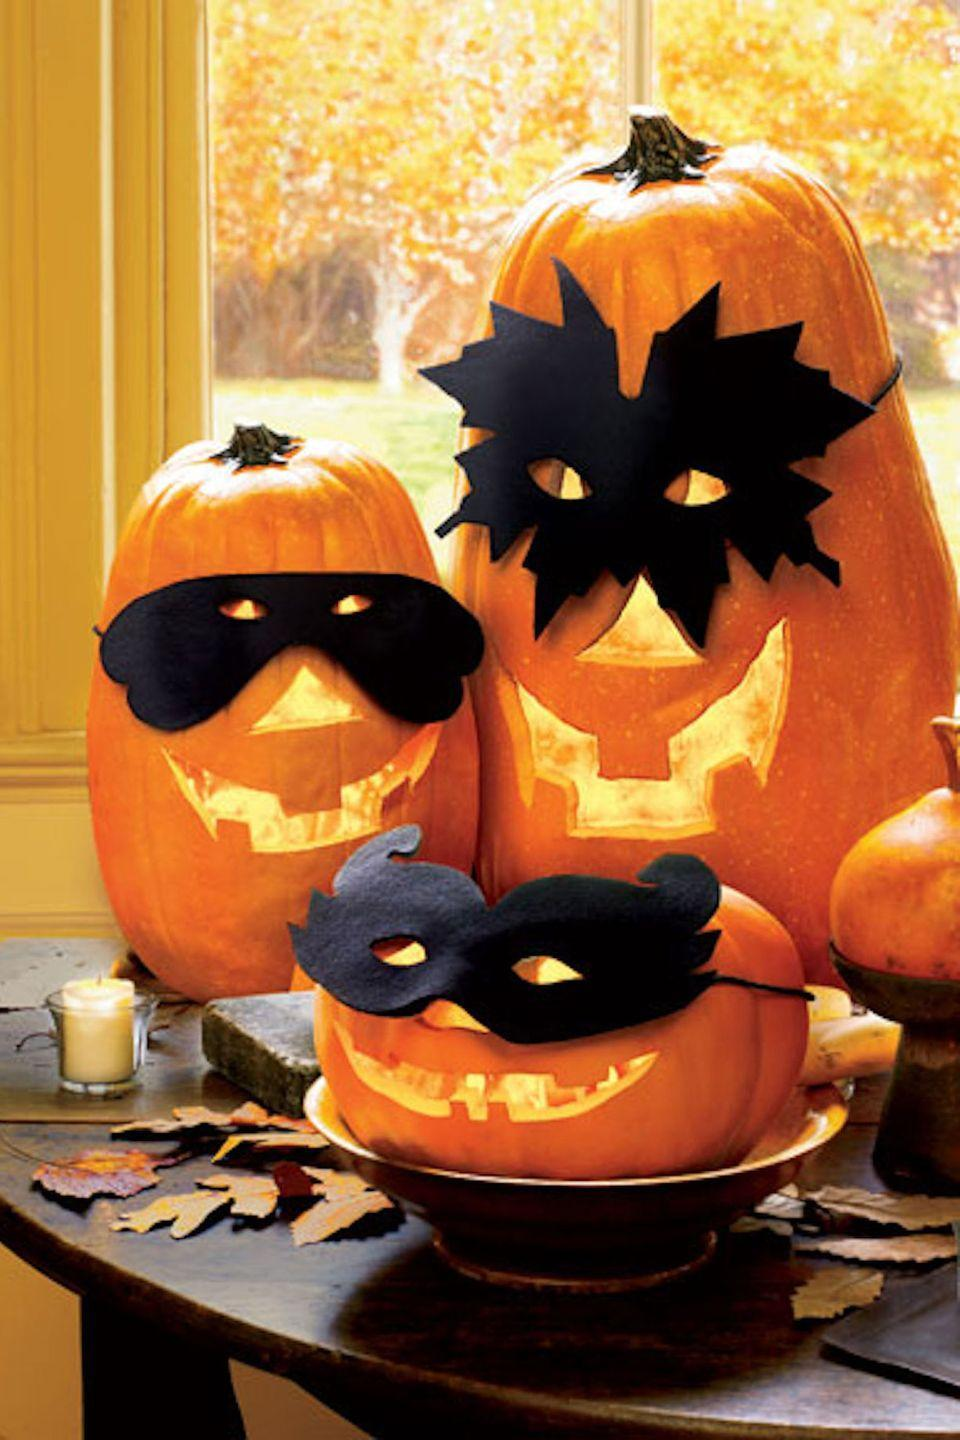 "<p>It's Halloween—why not dress up your pumpkins, too?</p><p><strong>Get the tutorial at <a href=""http://www.goodhousekeeping.com/holidays/halloween-ideas/a17493/halloween-pumpkin-masks-oct07/"" rel=""nofollow noopener"" target=""_blank"" data-ylk=""slk:Good Housekeeping"" class=""link rapid-noclick-resp"">Good Housekeeping</a>. </strong></p>"